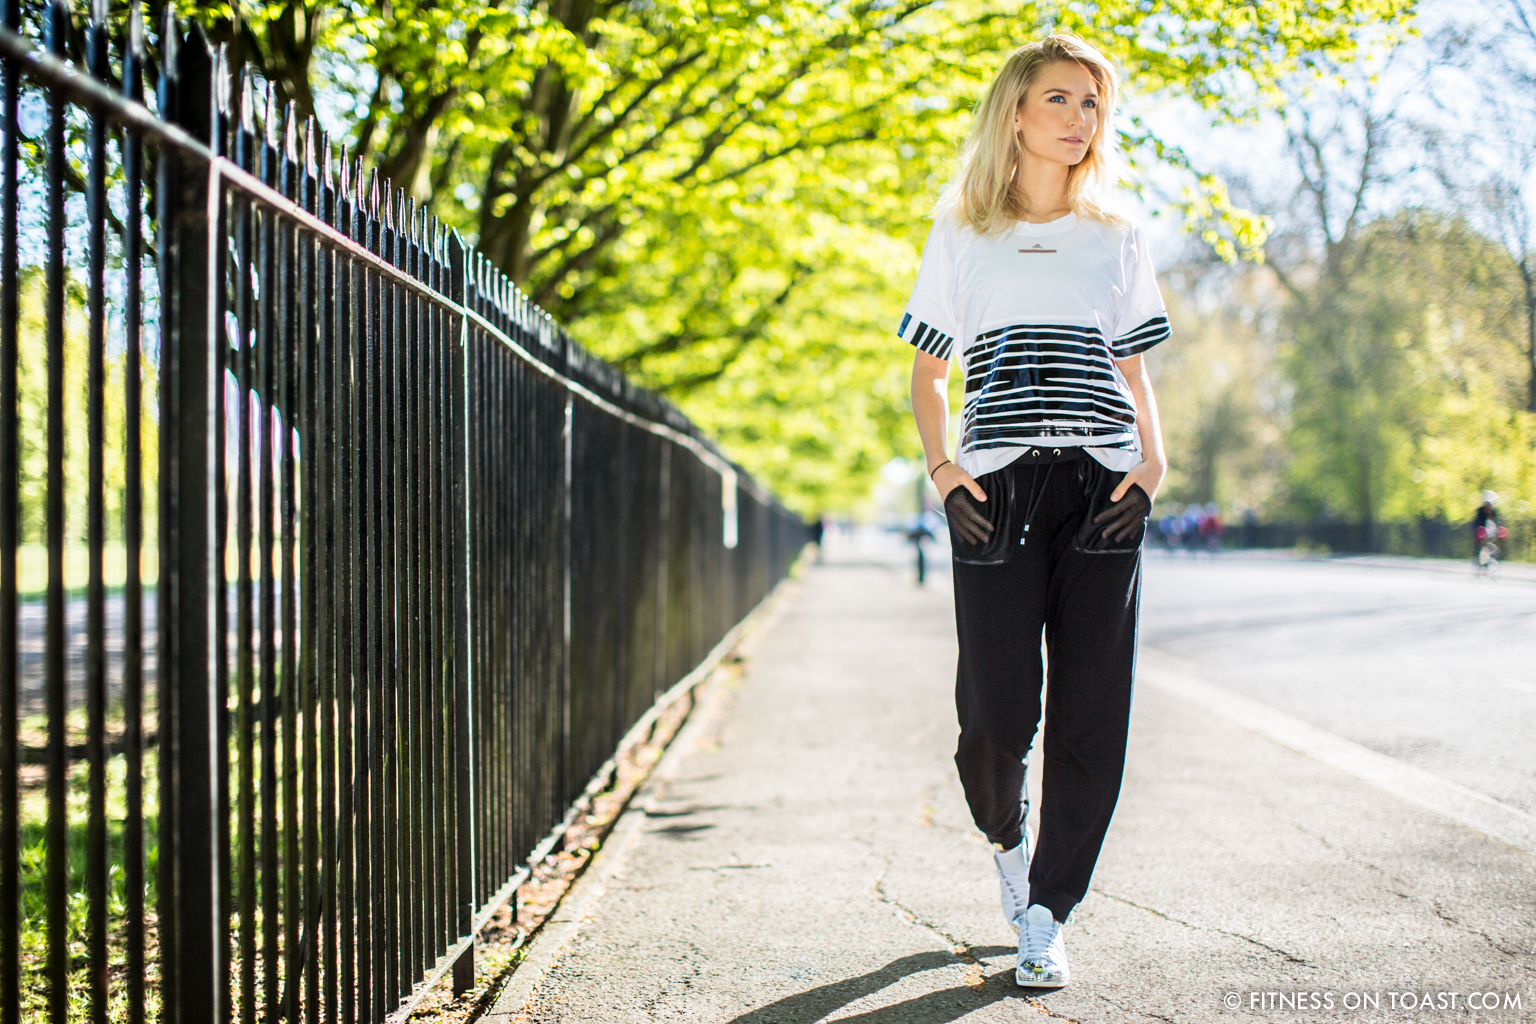 Faya Nilsson of Fitness On Toast in collaboration with Selfridges for 'The Body Studio'; Wandering through Regent's Park on a sunny spring day in her Adidas and Monreal outfit